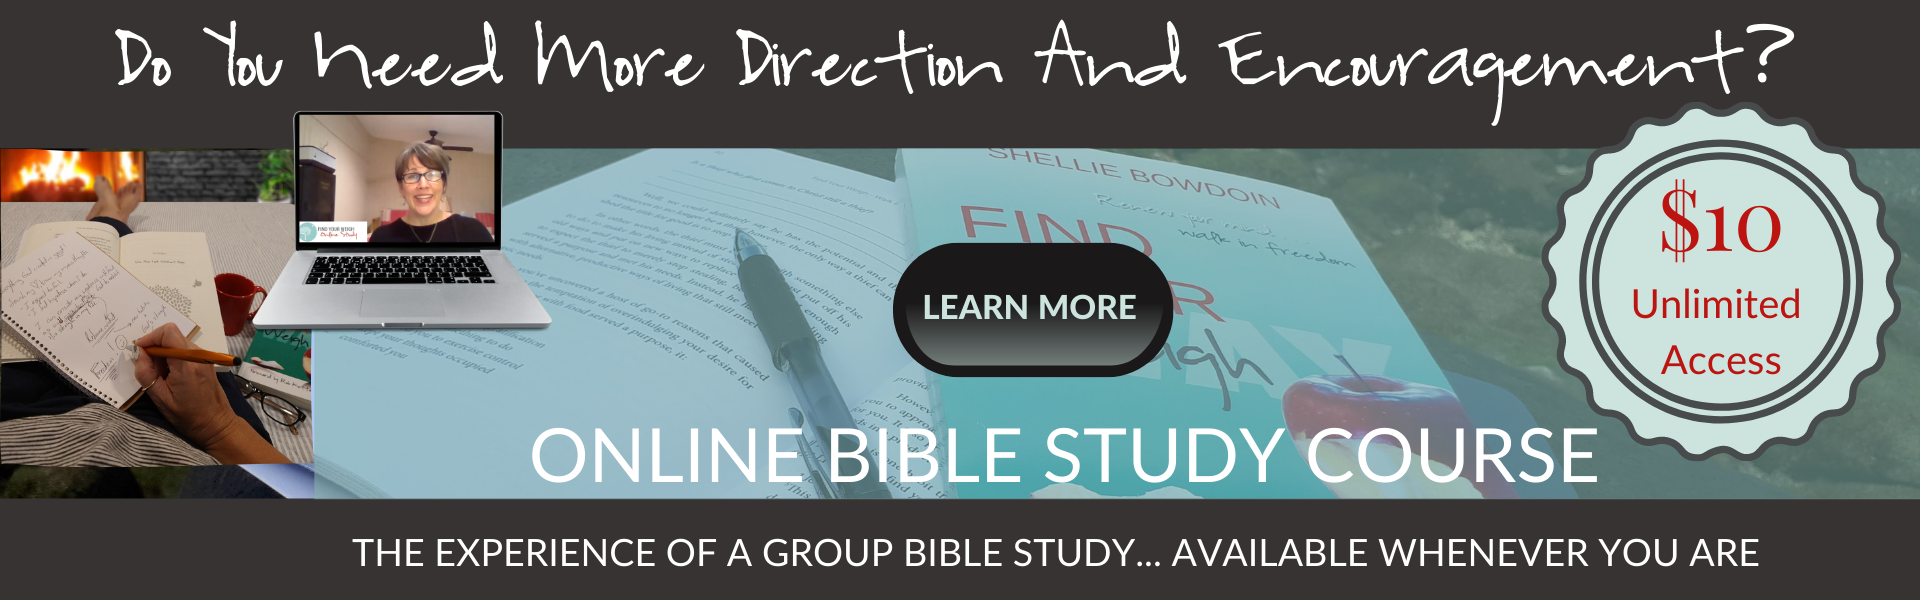 Find Your Weigh Online Bible Study Course - $10